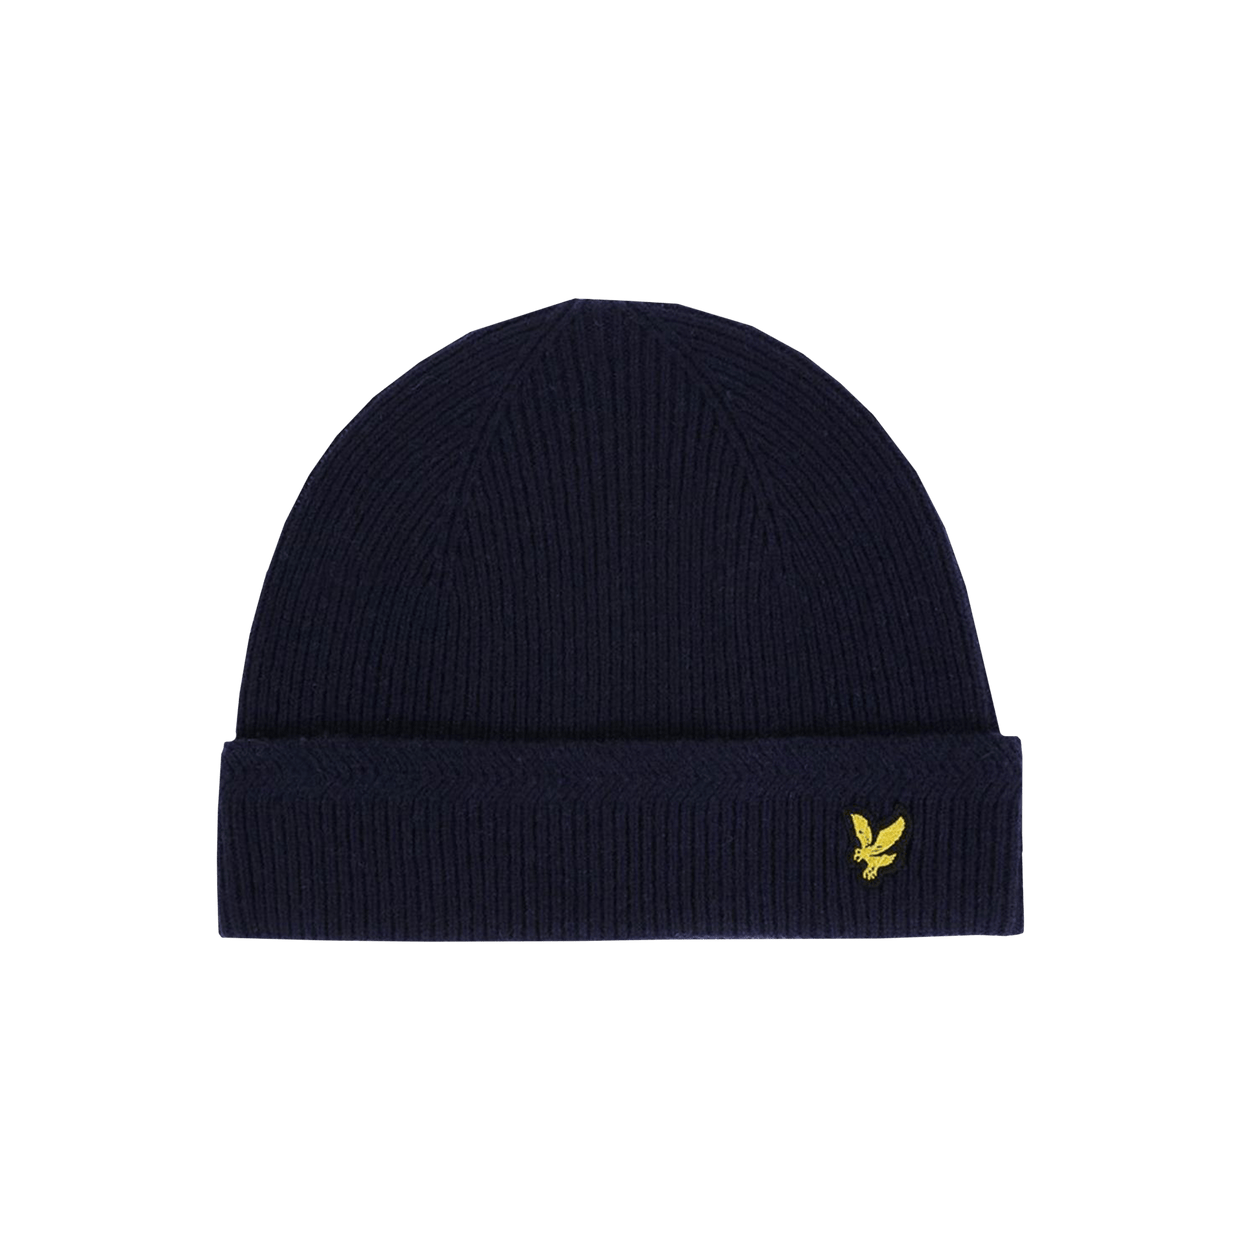 Racked rib Beanie - Blue Navy